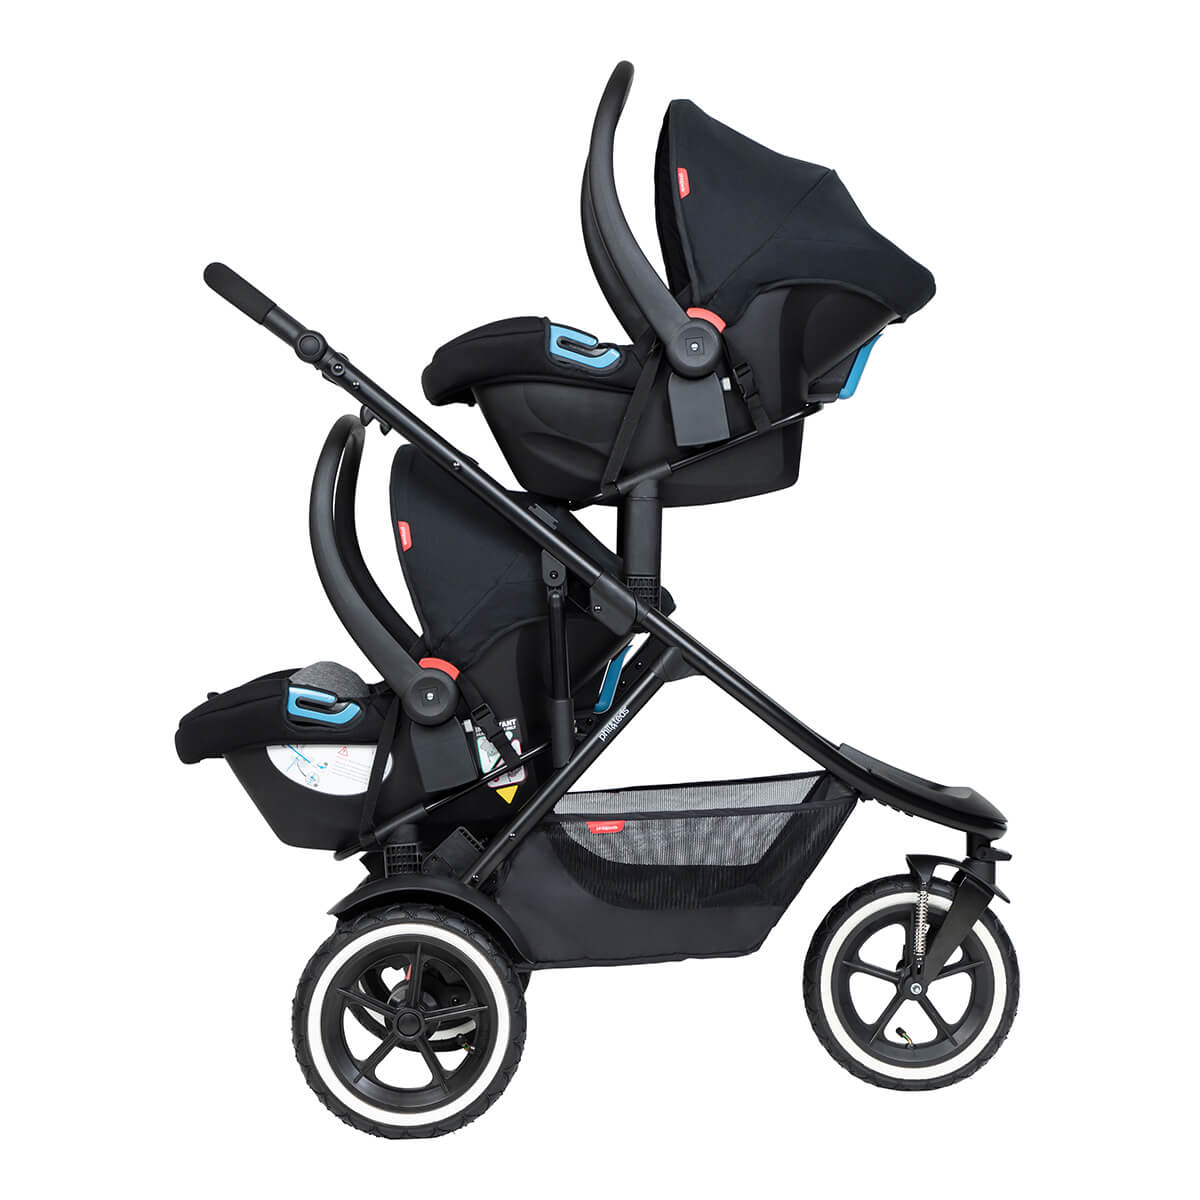 https://cdn.accentuate.io/4509902471245/19466204610754/philteds-sport-buggy-with-double-alpha-travel-system-v1626485432337.jpg?1200x1200